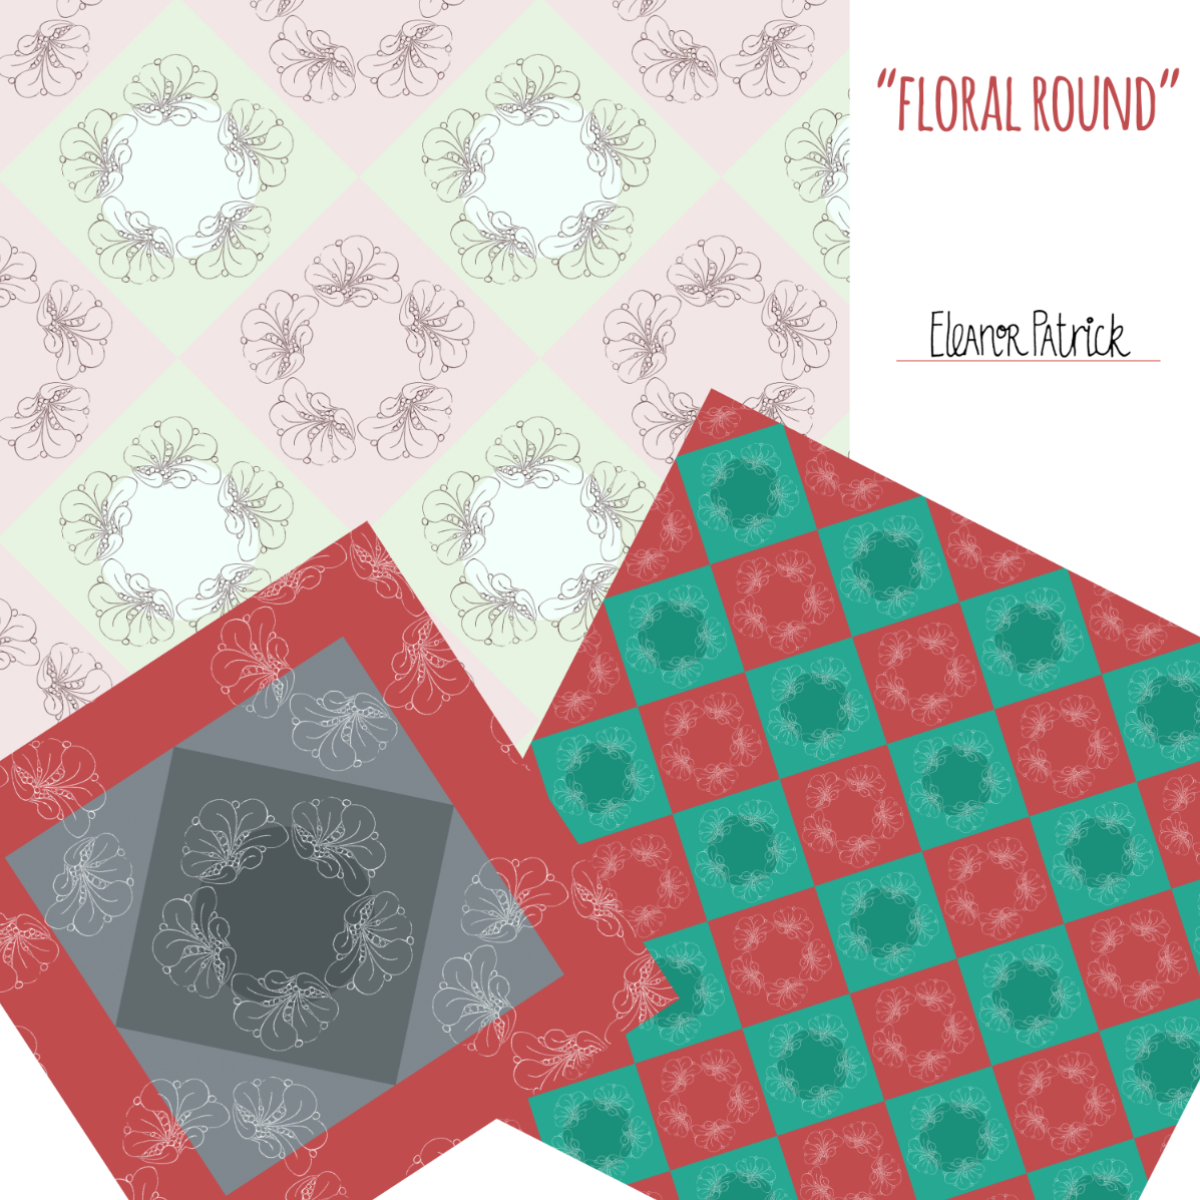 floral round samples